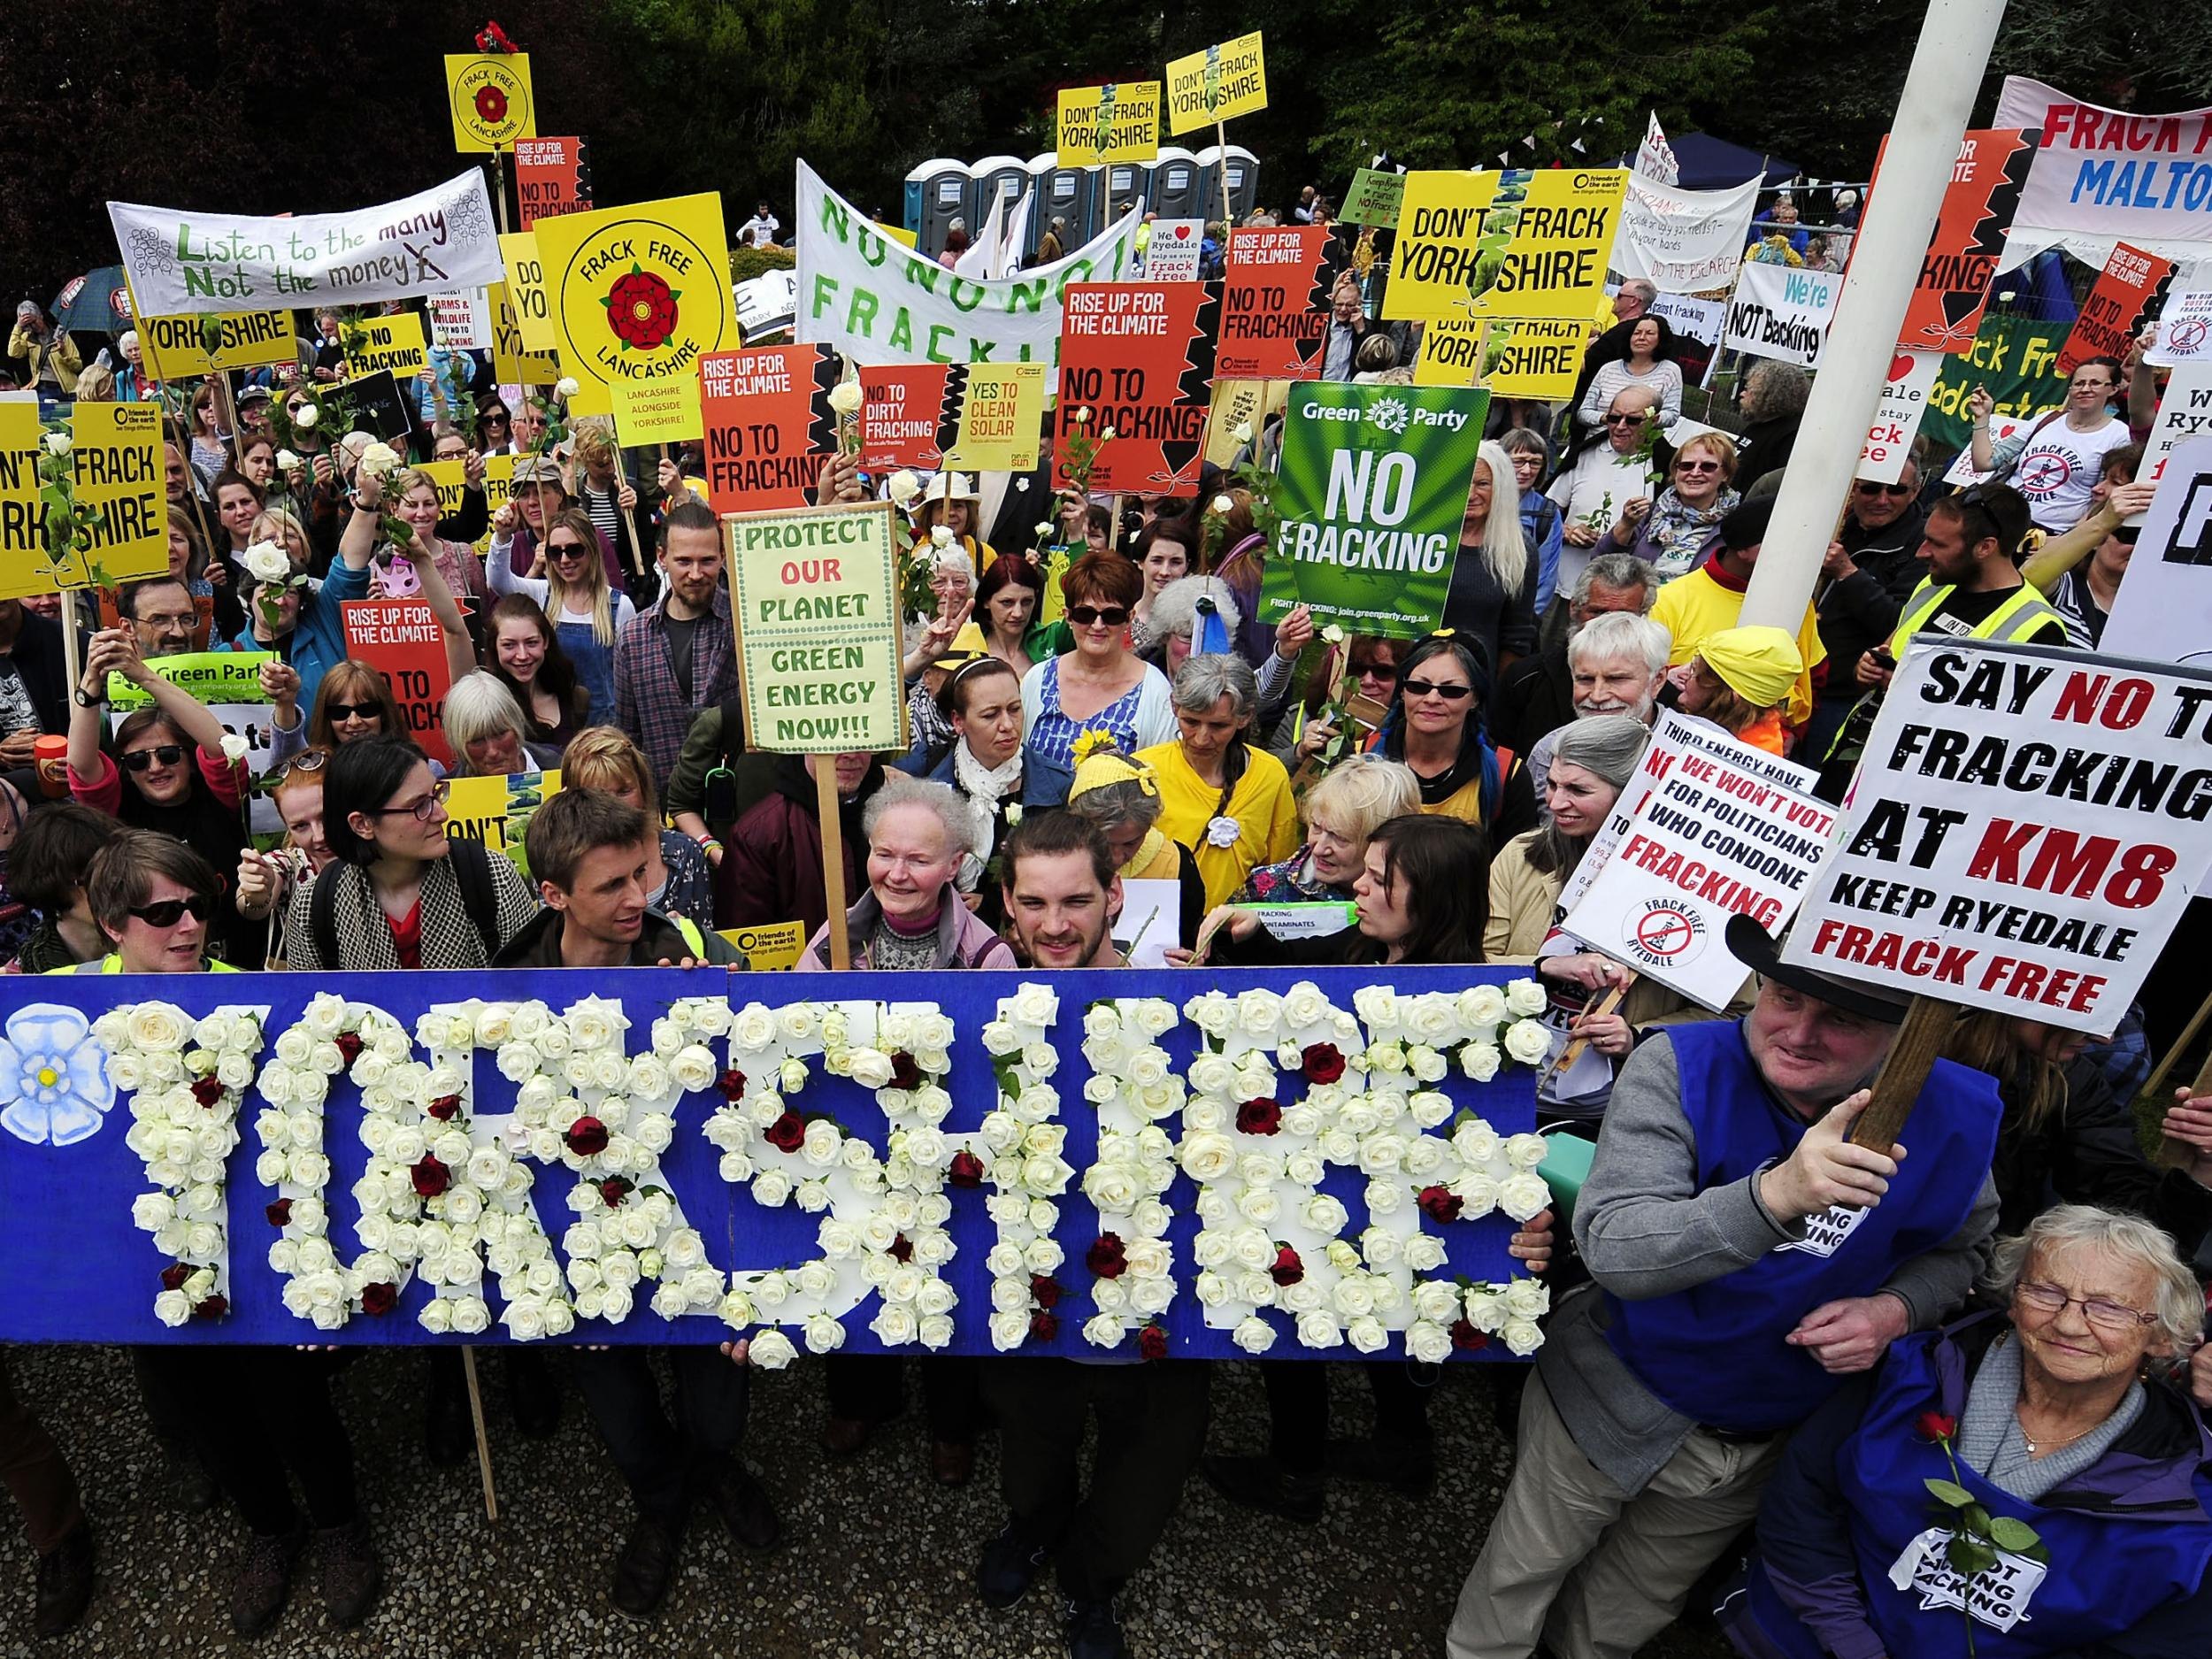 Ministers suppressed damaging fracking report until after crucial vo…